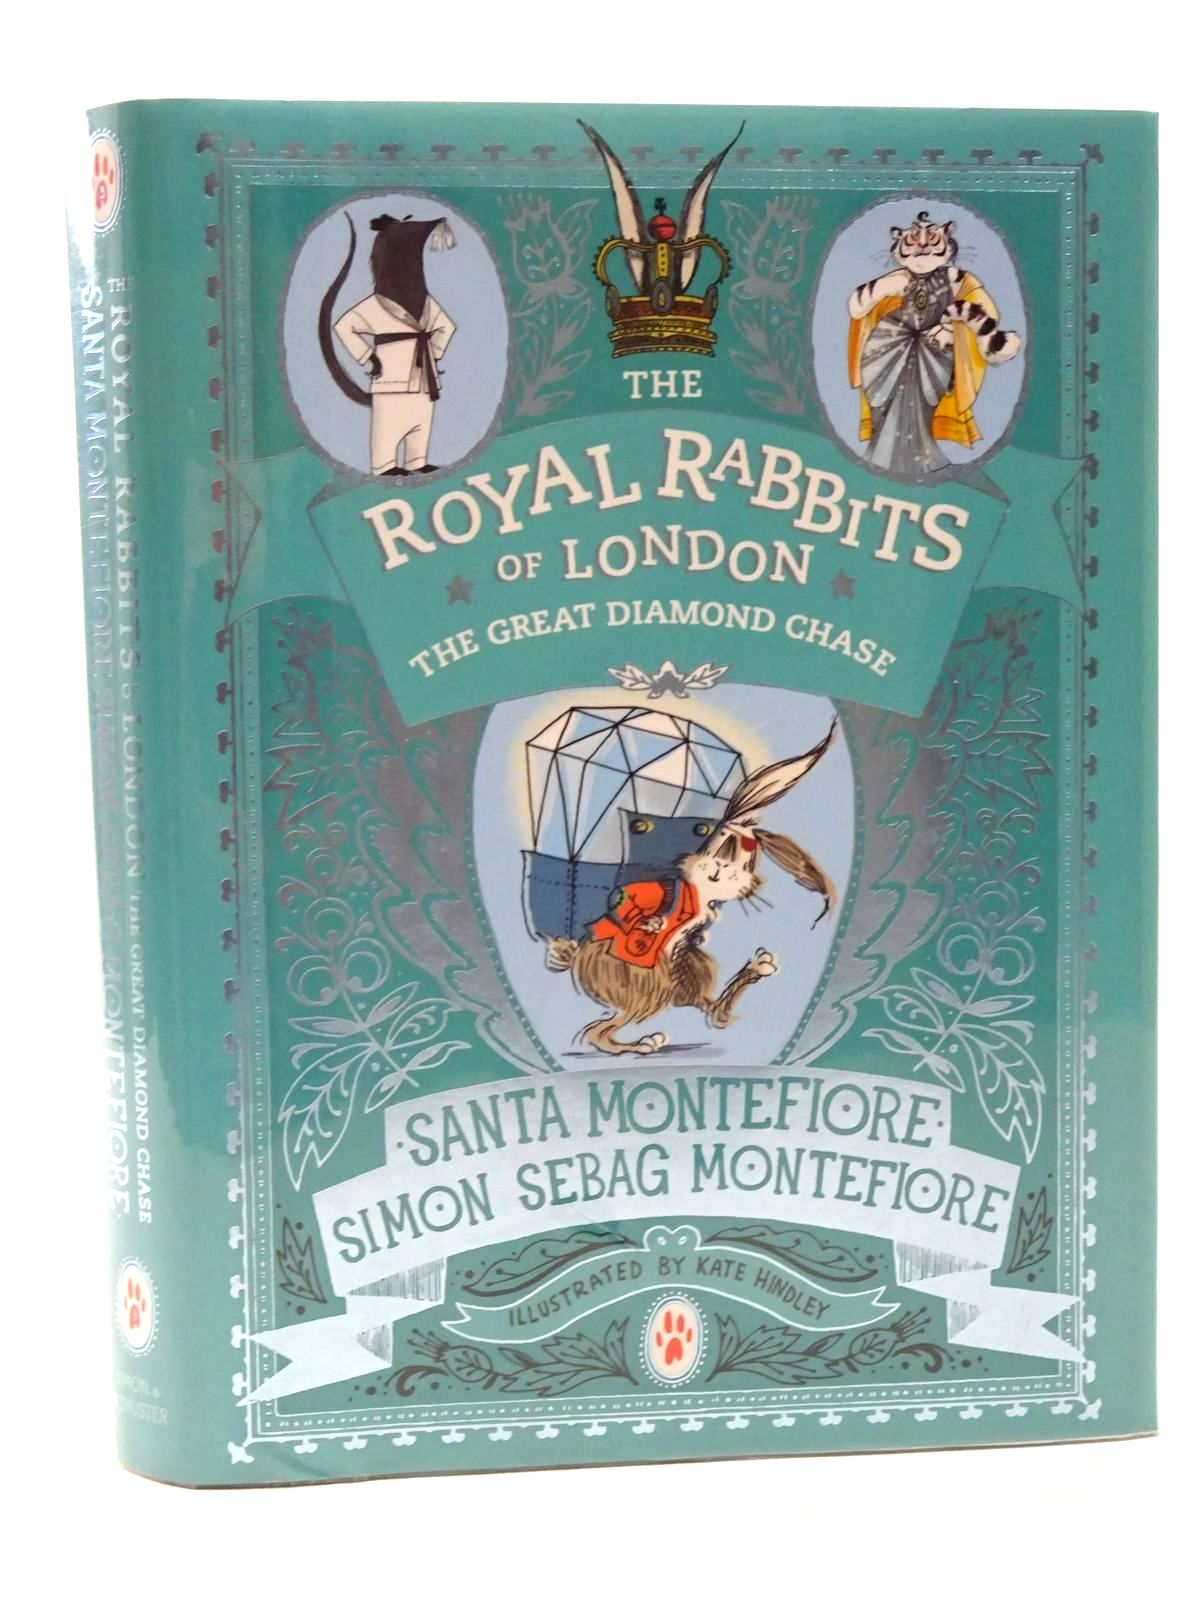 Photo of THE ROYAL RABBITS OF LONDON THE GREAT DIAMOND CHASE written by Montefiore, Santa<br />Montefiore, Simon Sebag illustrated by Hindley, Kate published by Simon & Schuster (STOCK CODE: 2124459)  for sale by Stella & Rose's Books